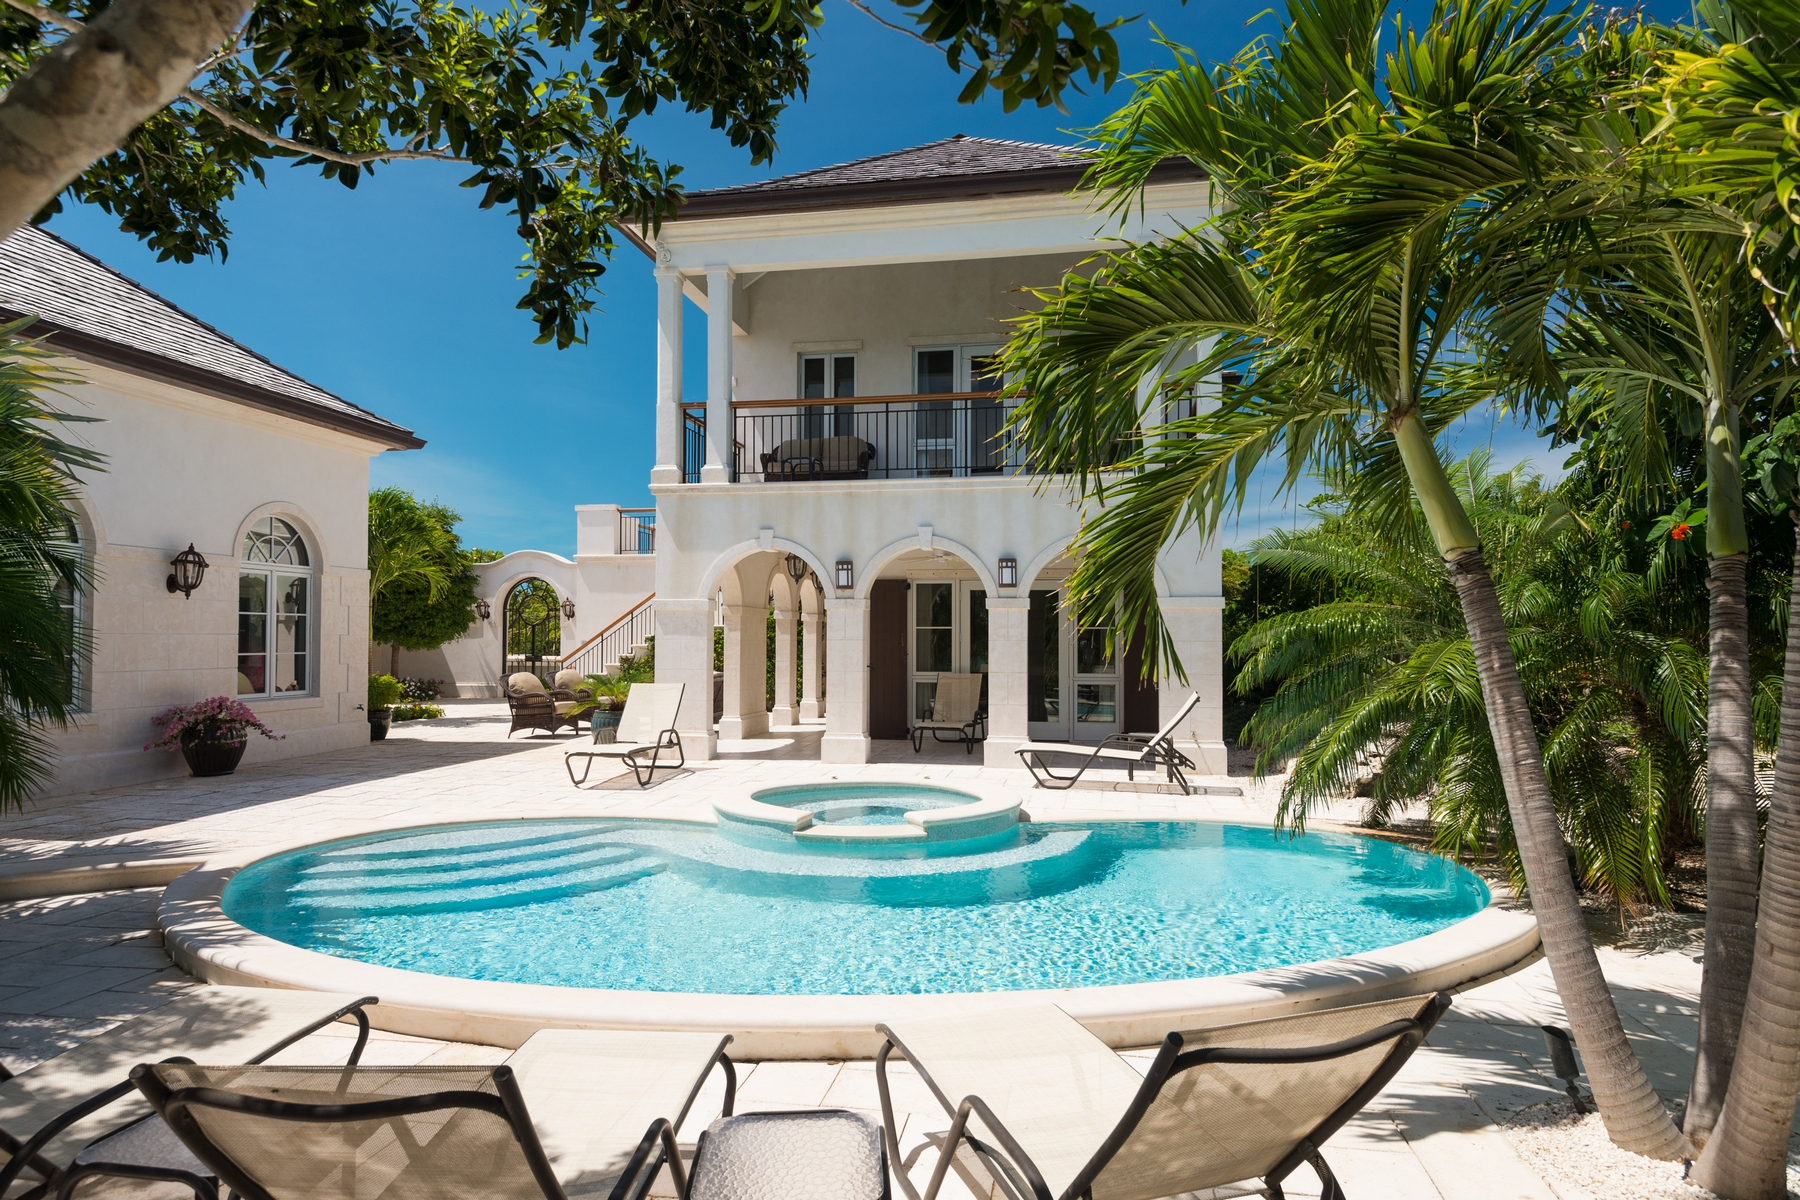 Single Family Home for Sale at Casa Barana Beachfront Thompson Cove, Providenciales TCI BWI Turks And Caicos Islands